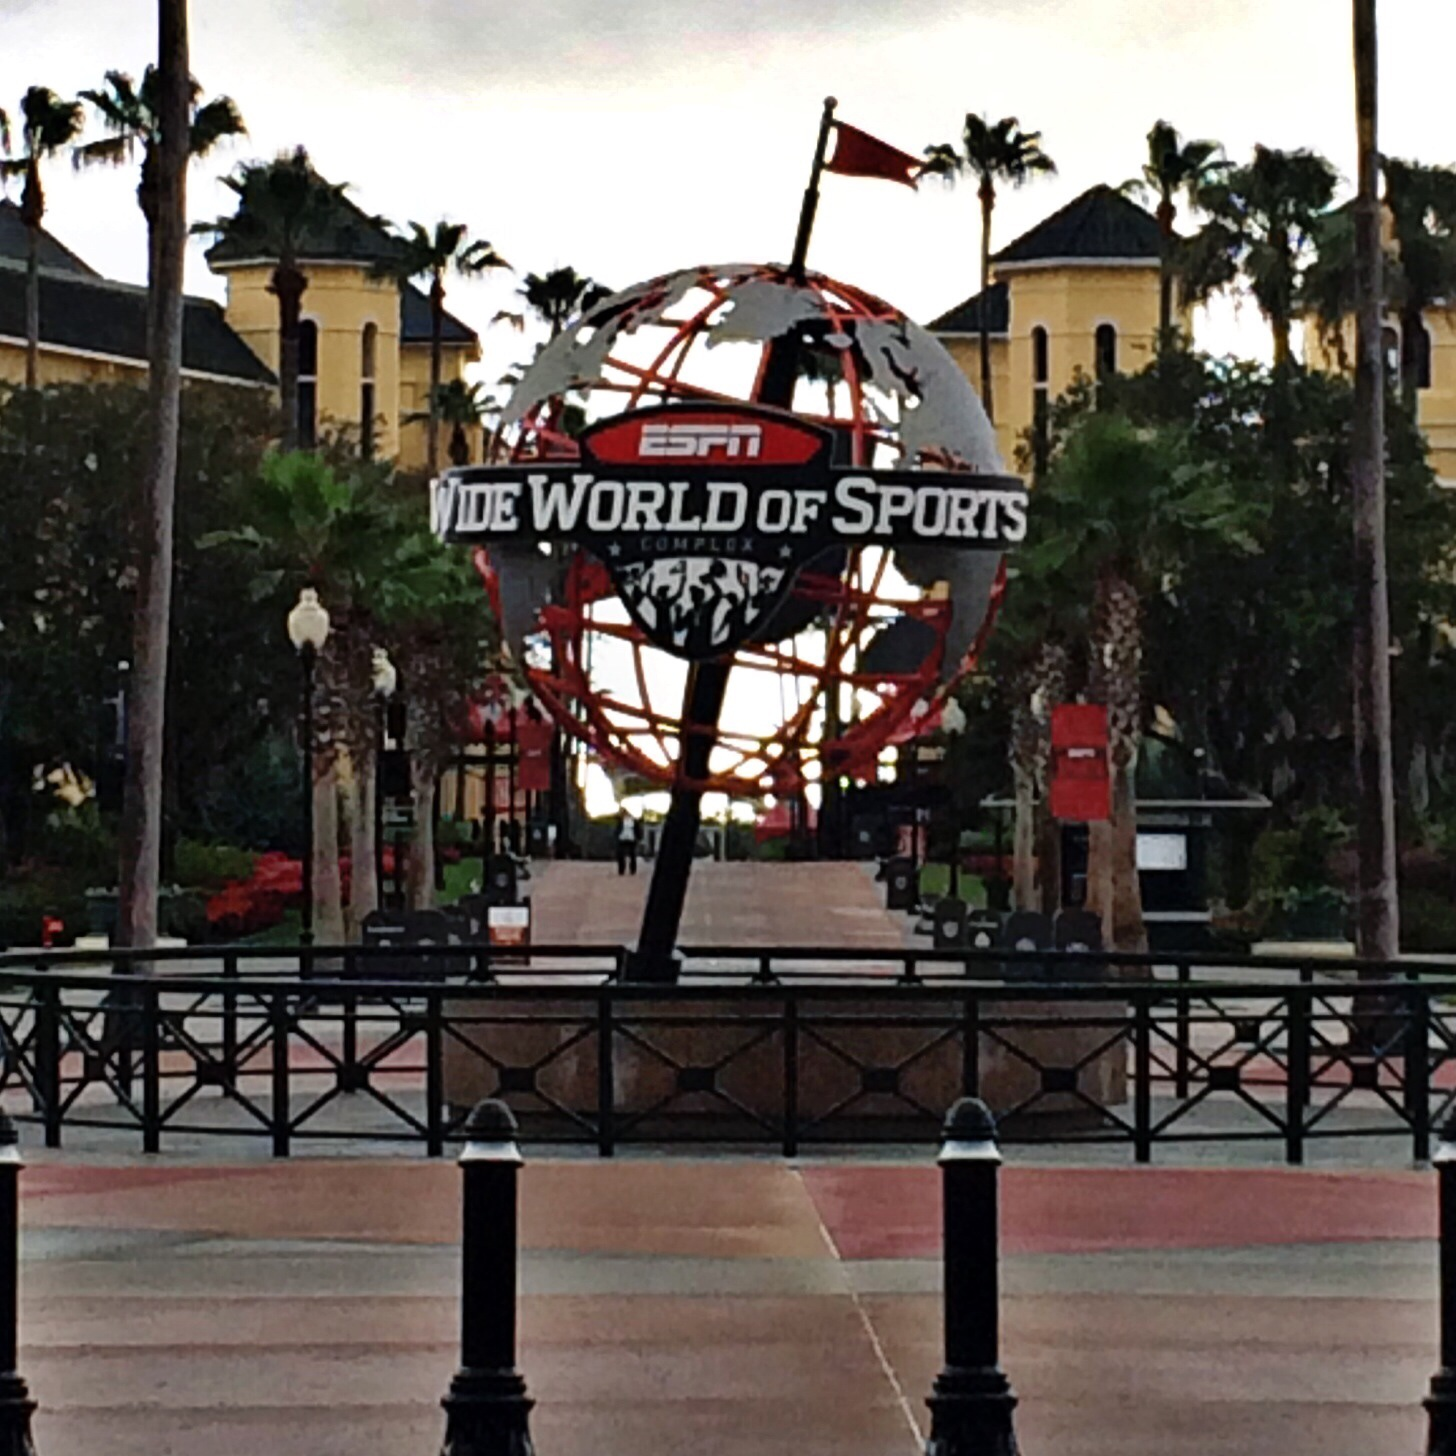 Special Olympics Florida ESPN Wide World of Sports